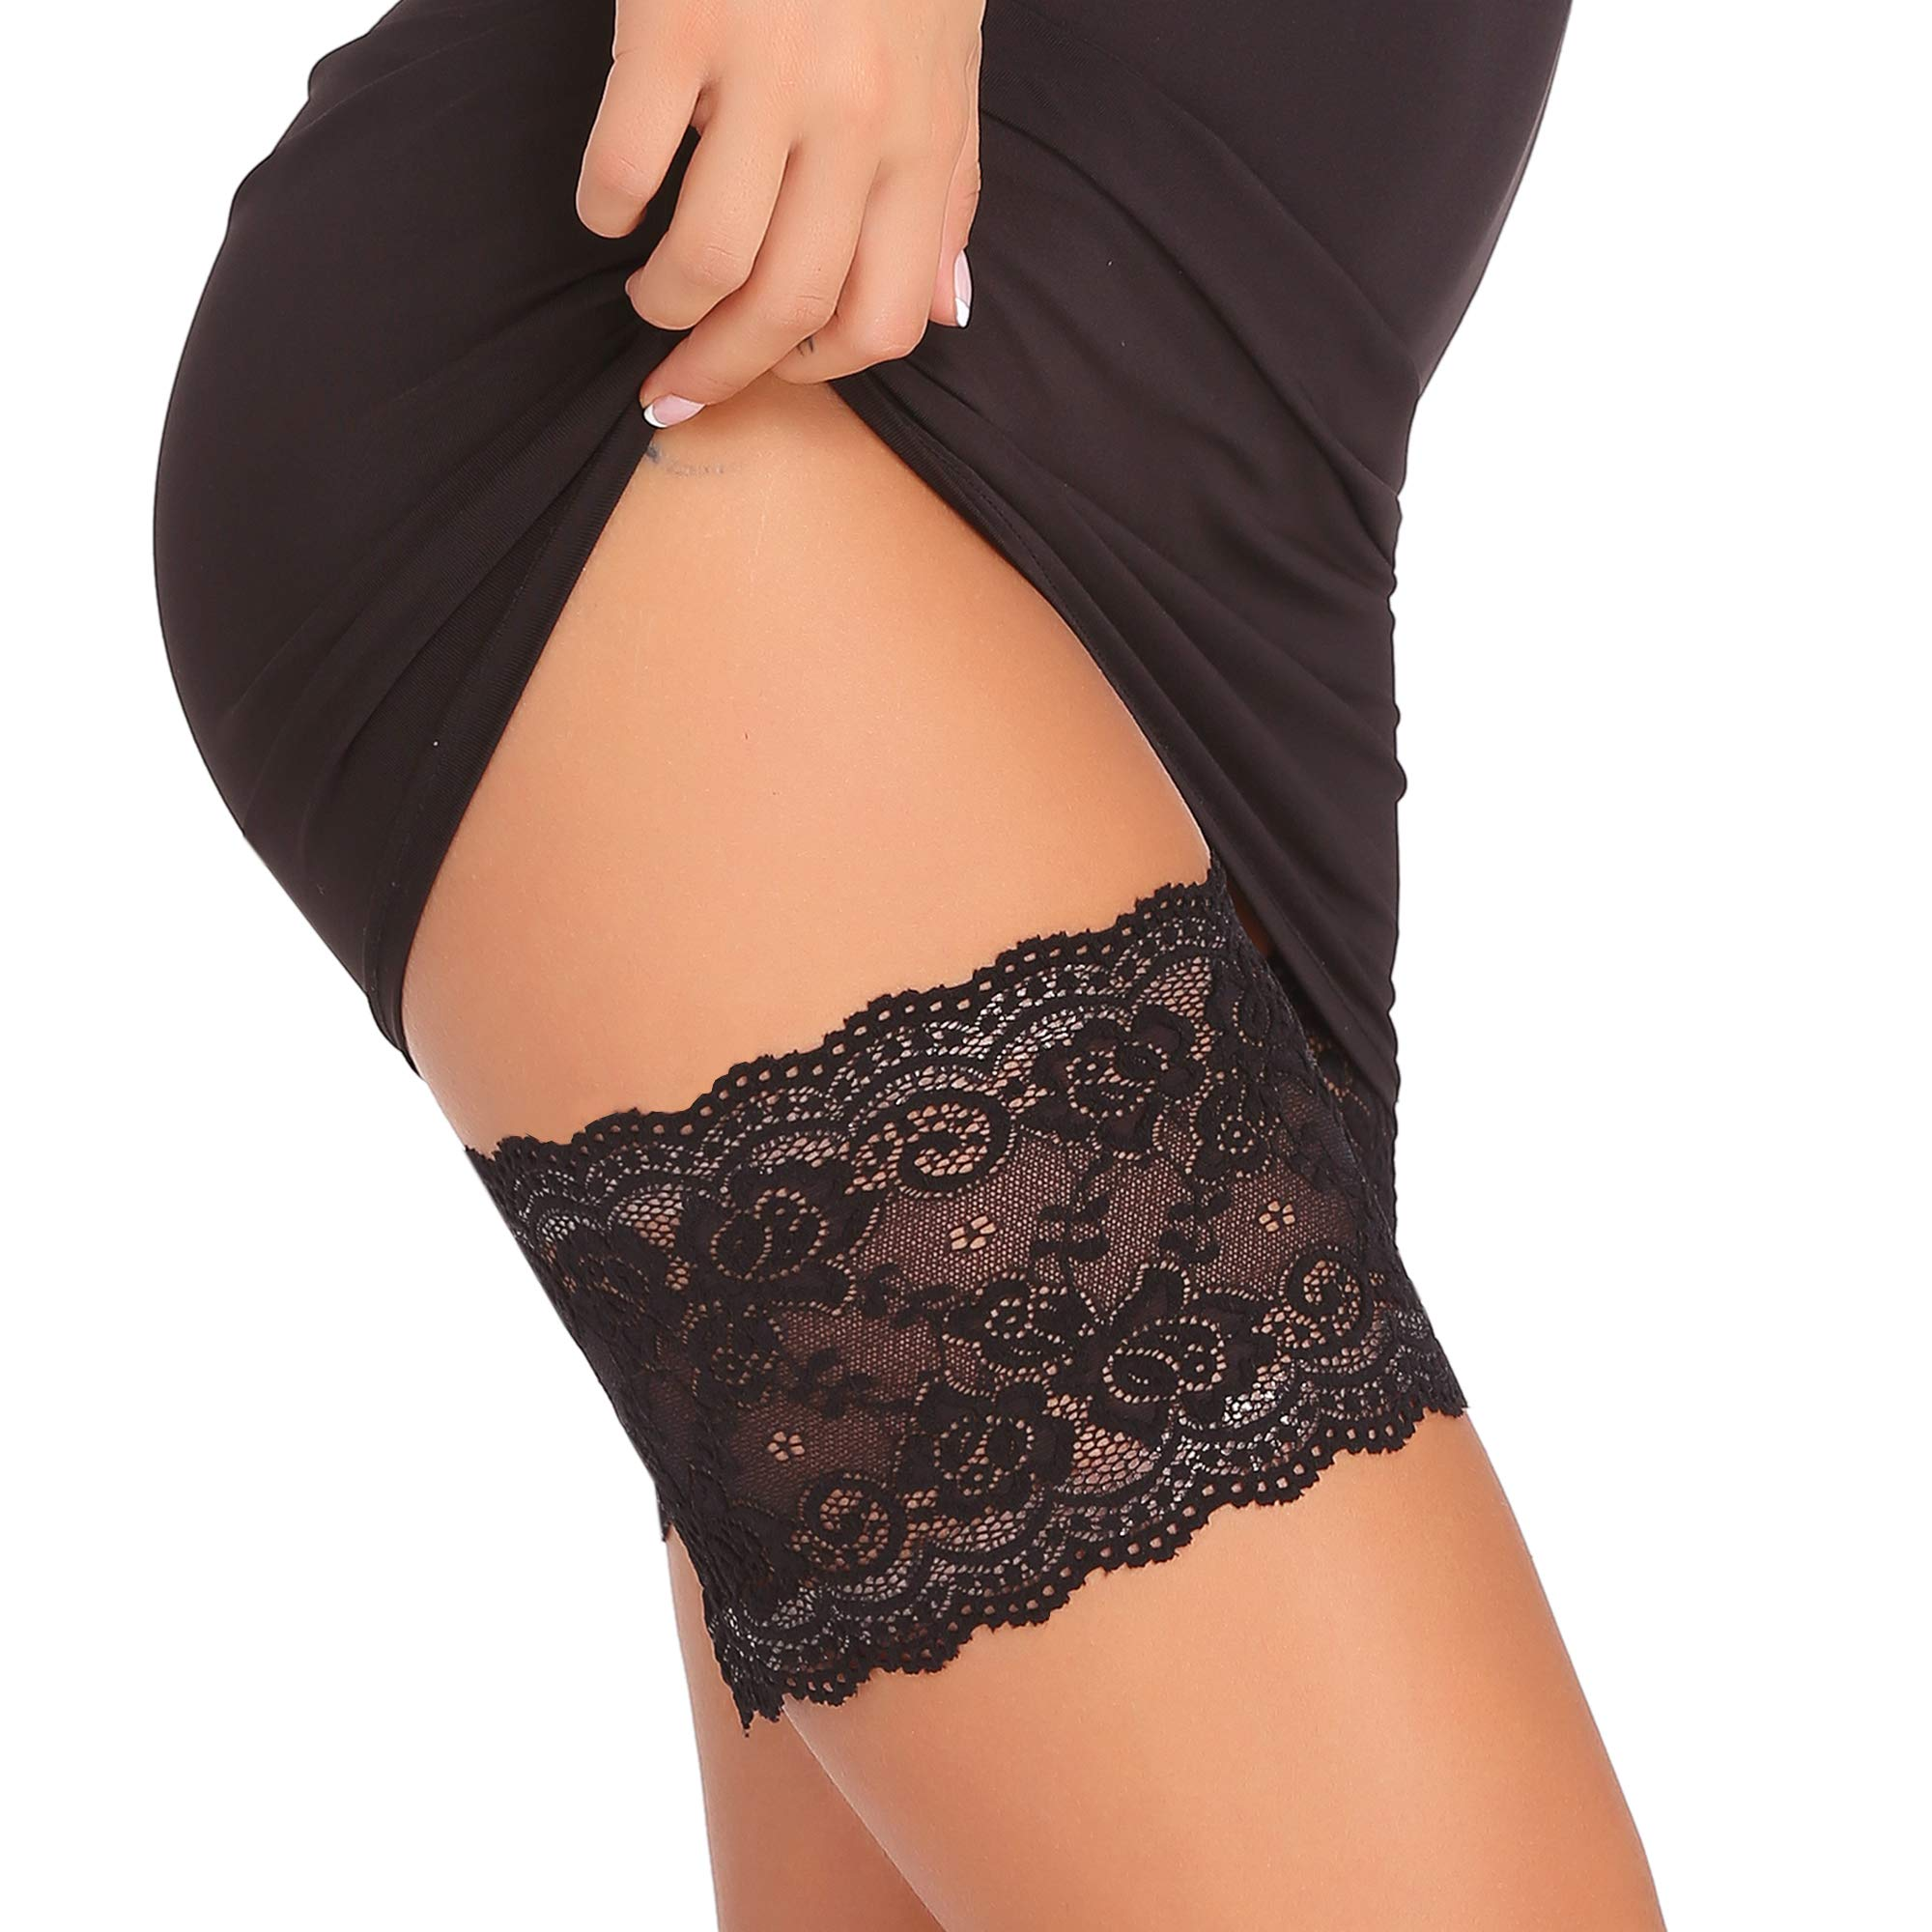 Amorbella Anti Chaffing Protection Bands Elastic Lace Prevent Thigh Chafing (Black, Medium)